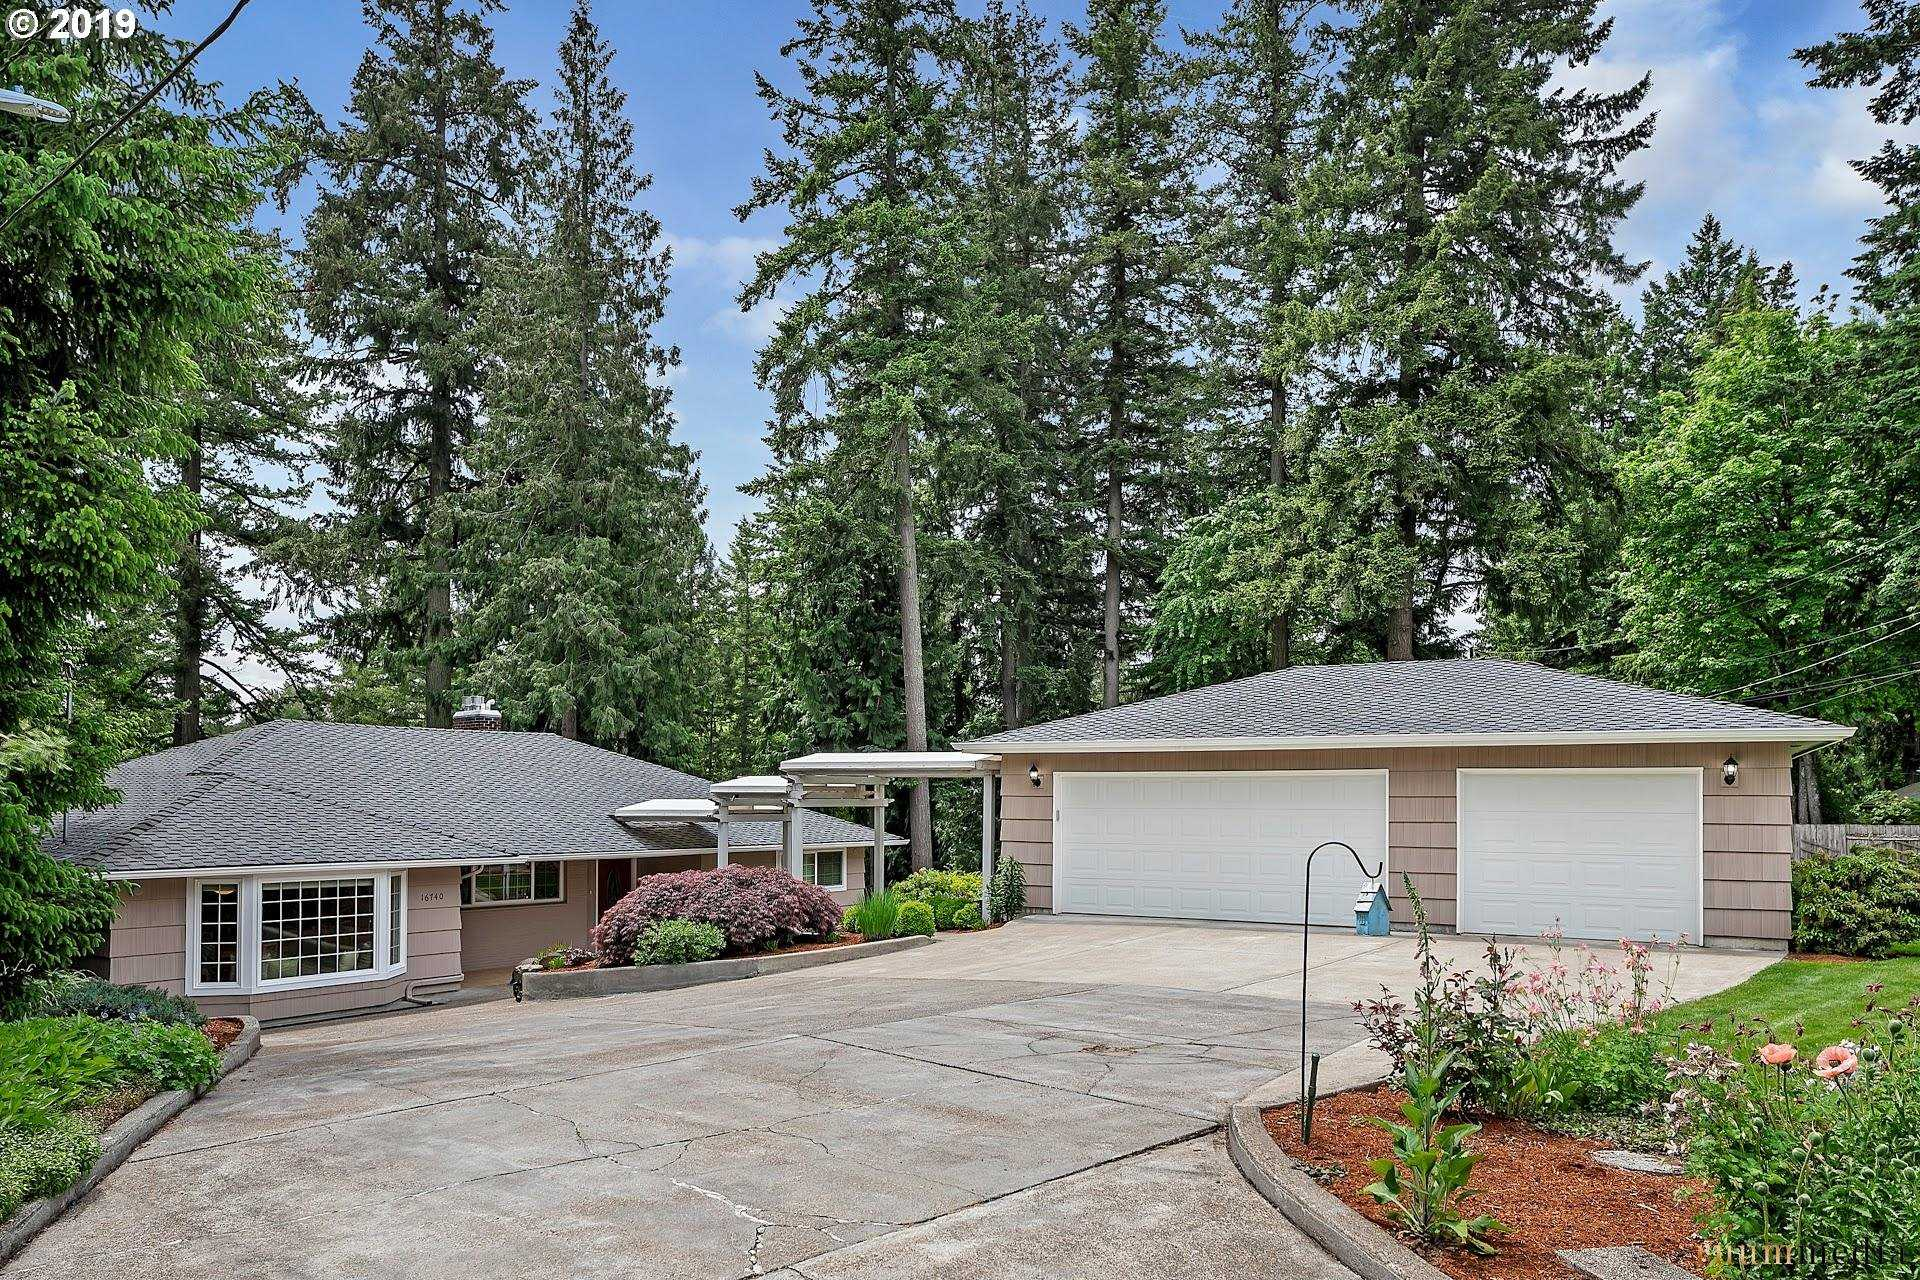 $999,900 - 4Br/3Ba -  for Sale in Tigard